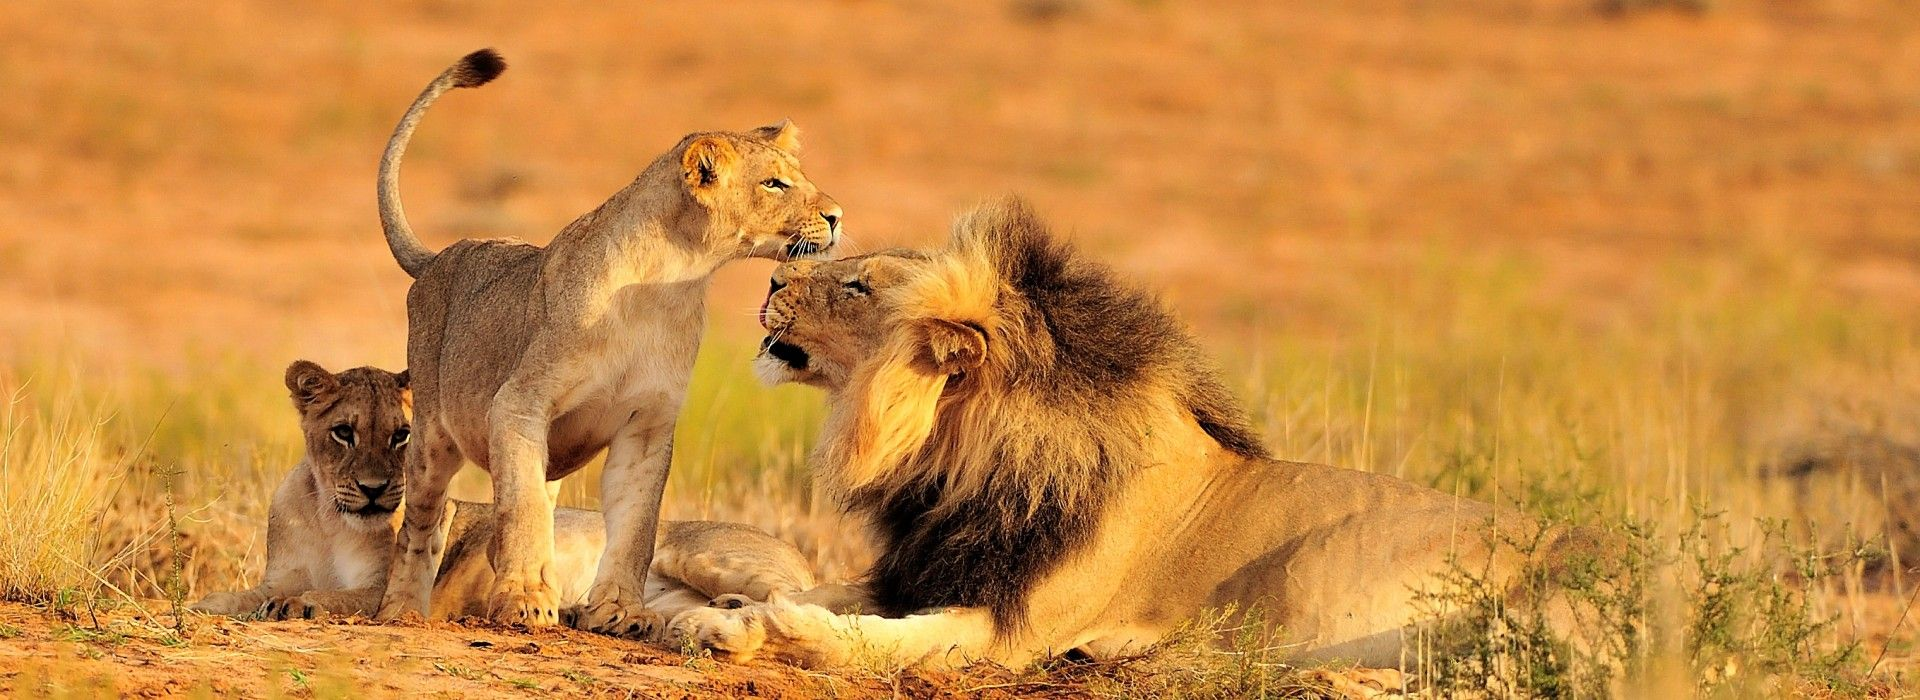 Family Tours in South Africa